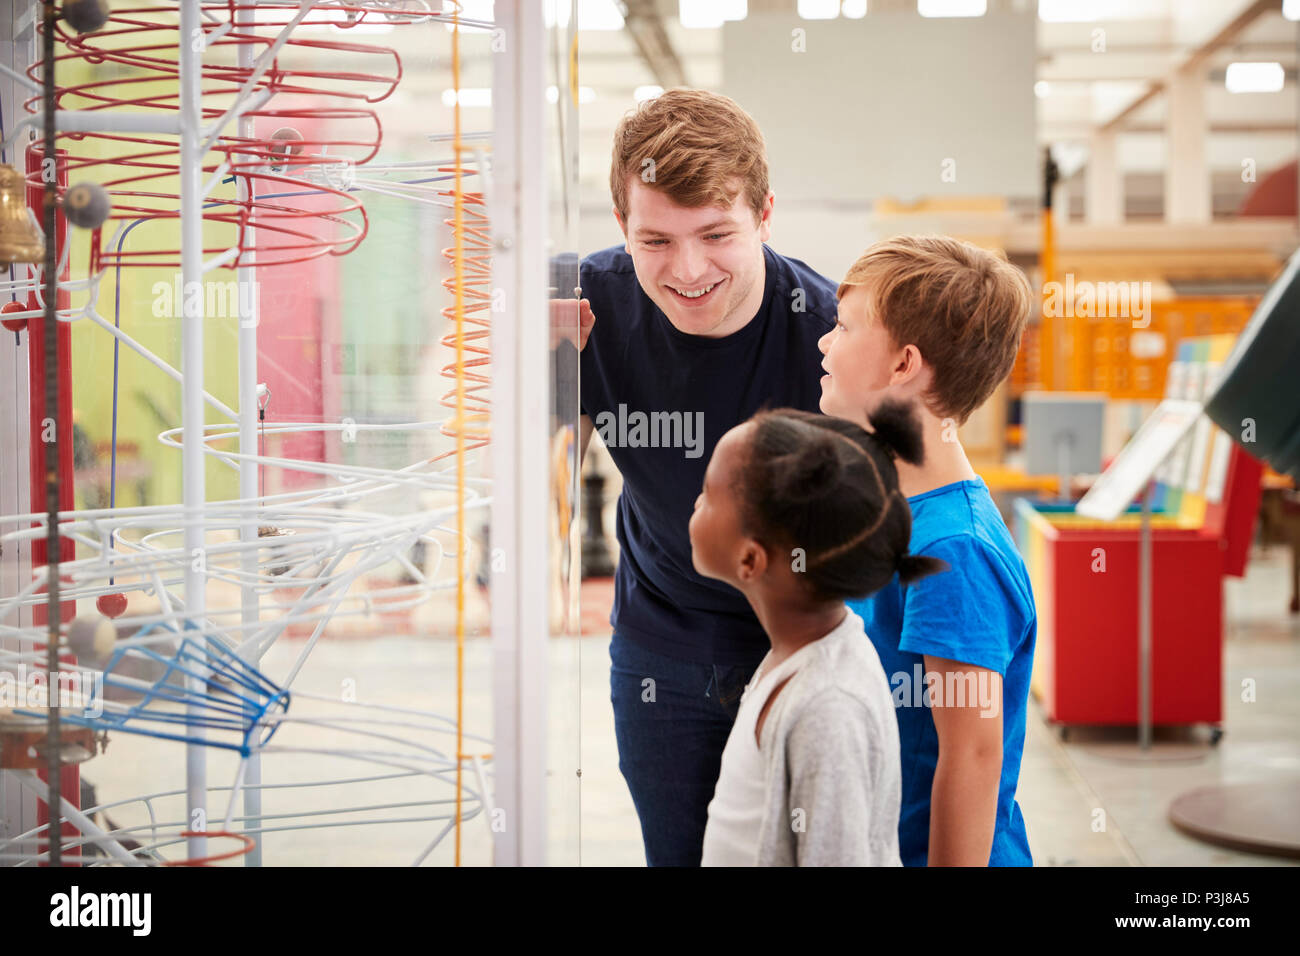 Teacher and kids talking about a science exhibit - Stock Image